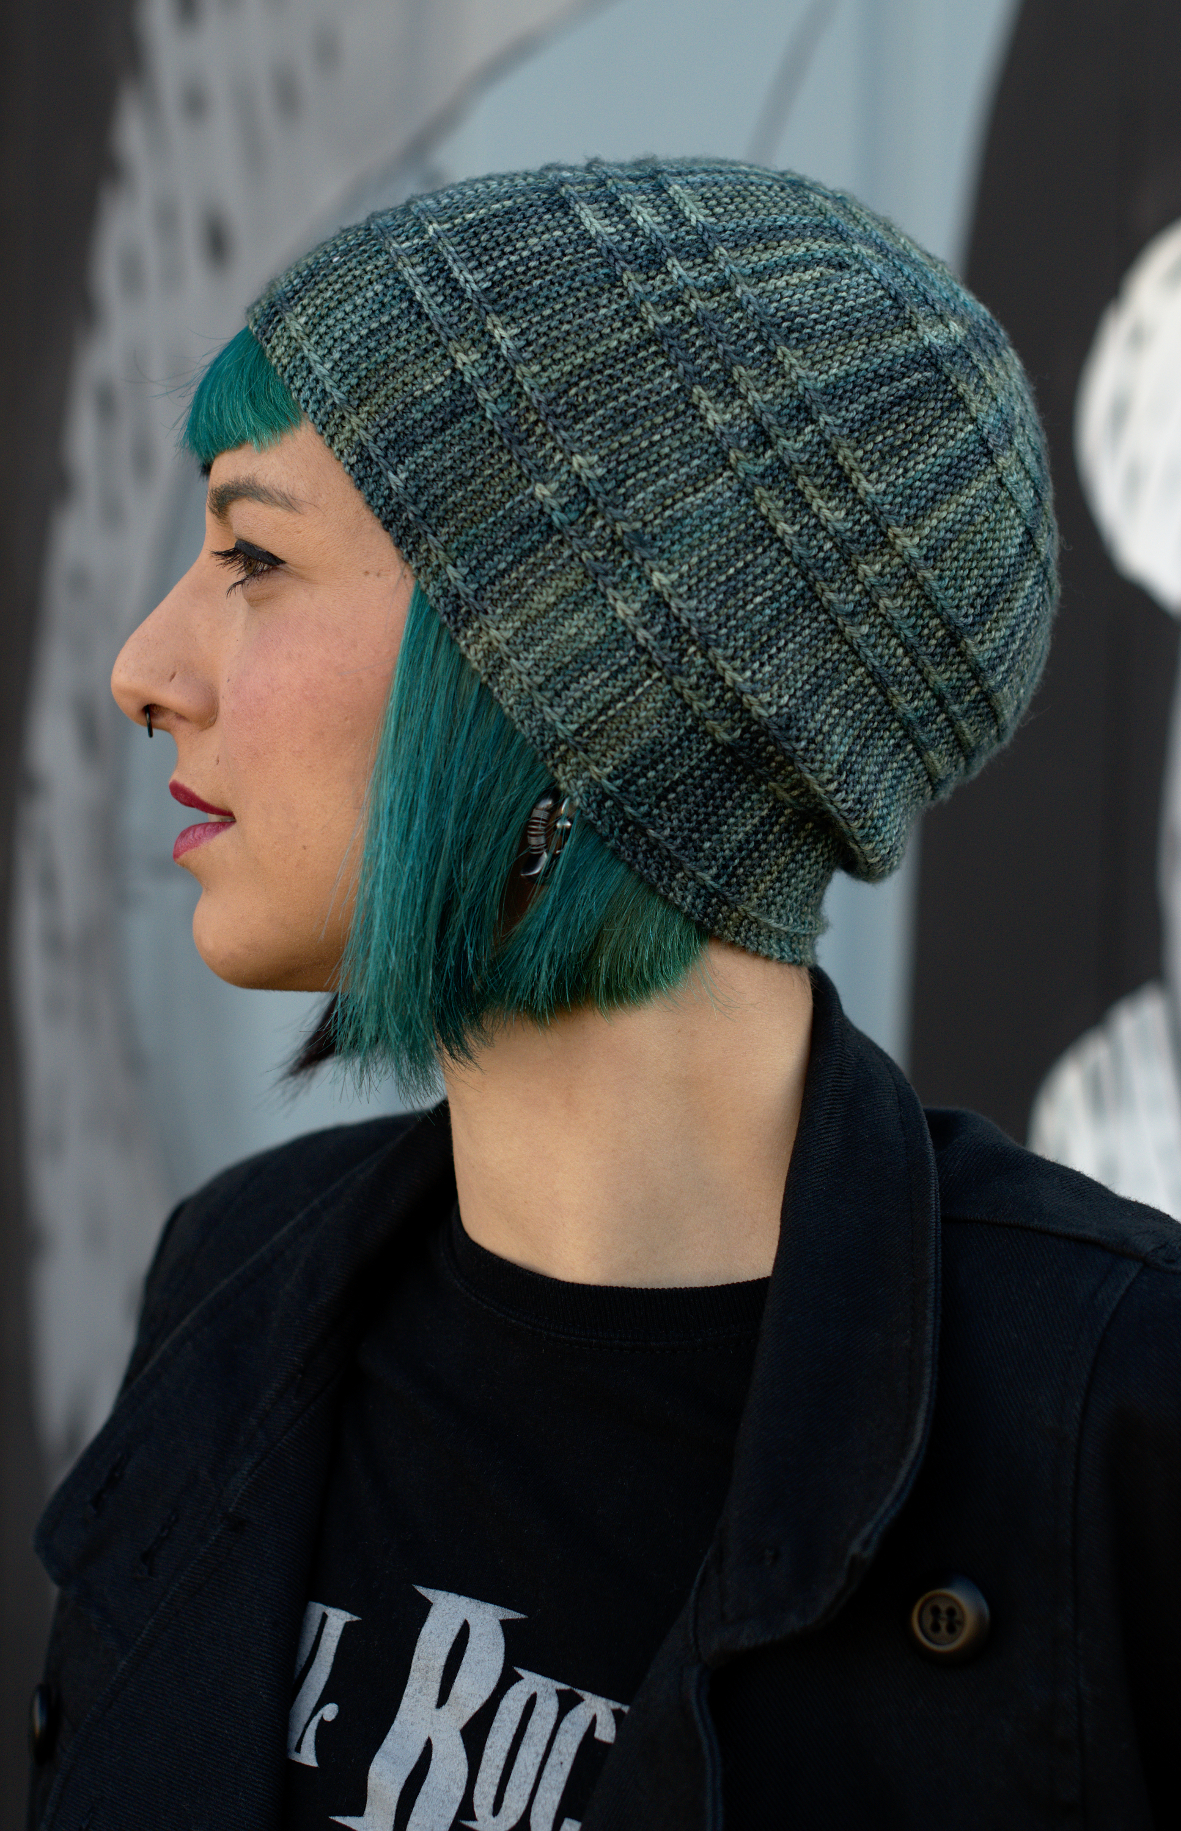 Circled 2 sideways knit Hat with fibonacci sequence of concentric rings